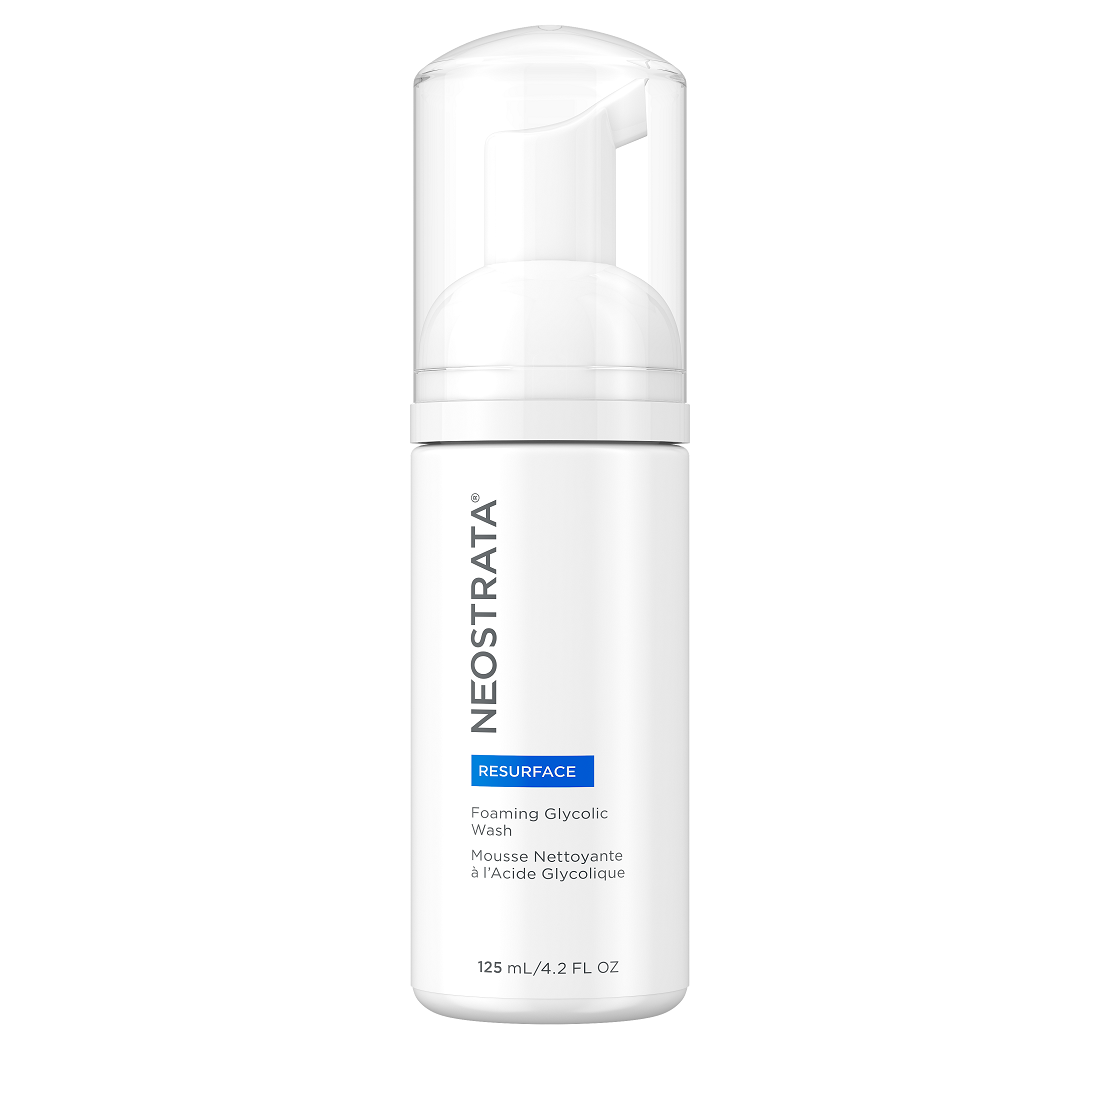 F30150_Foaming_Glycolic_Wash_125ml_00000